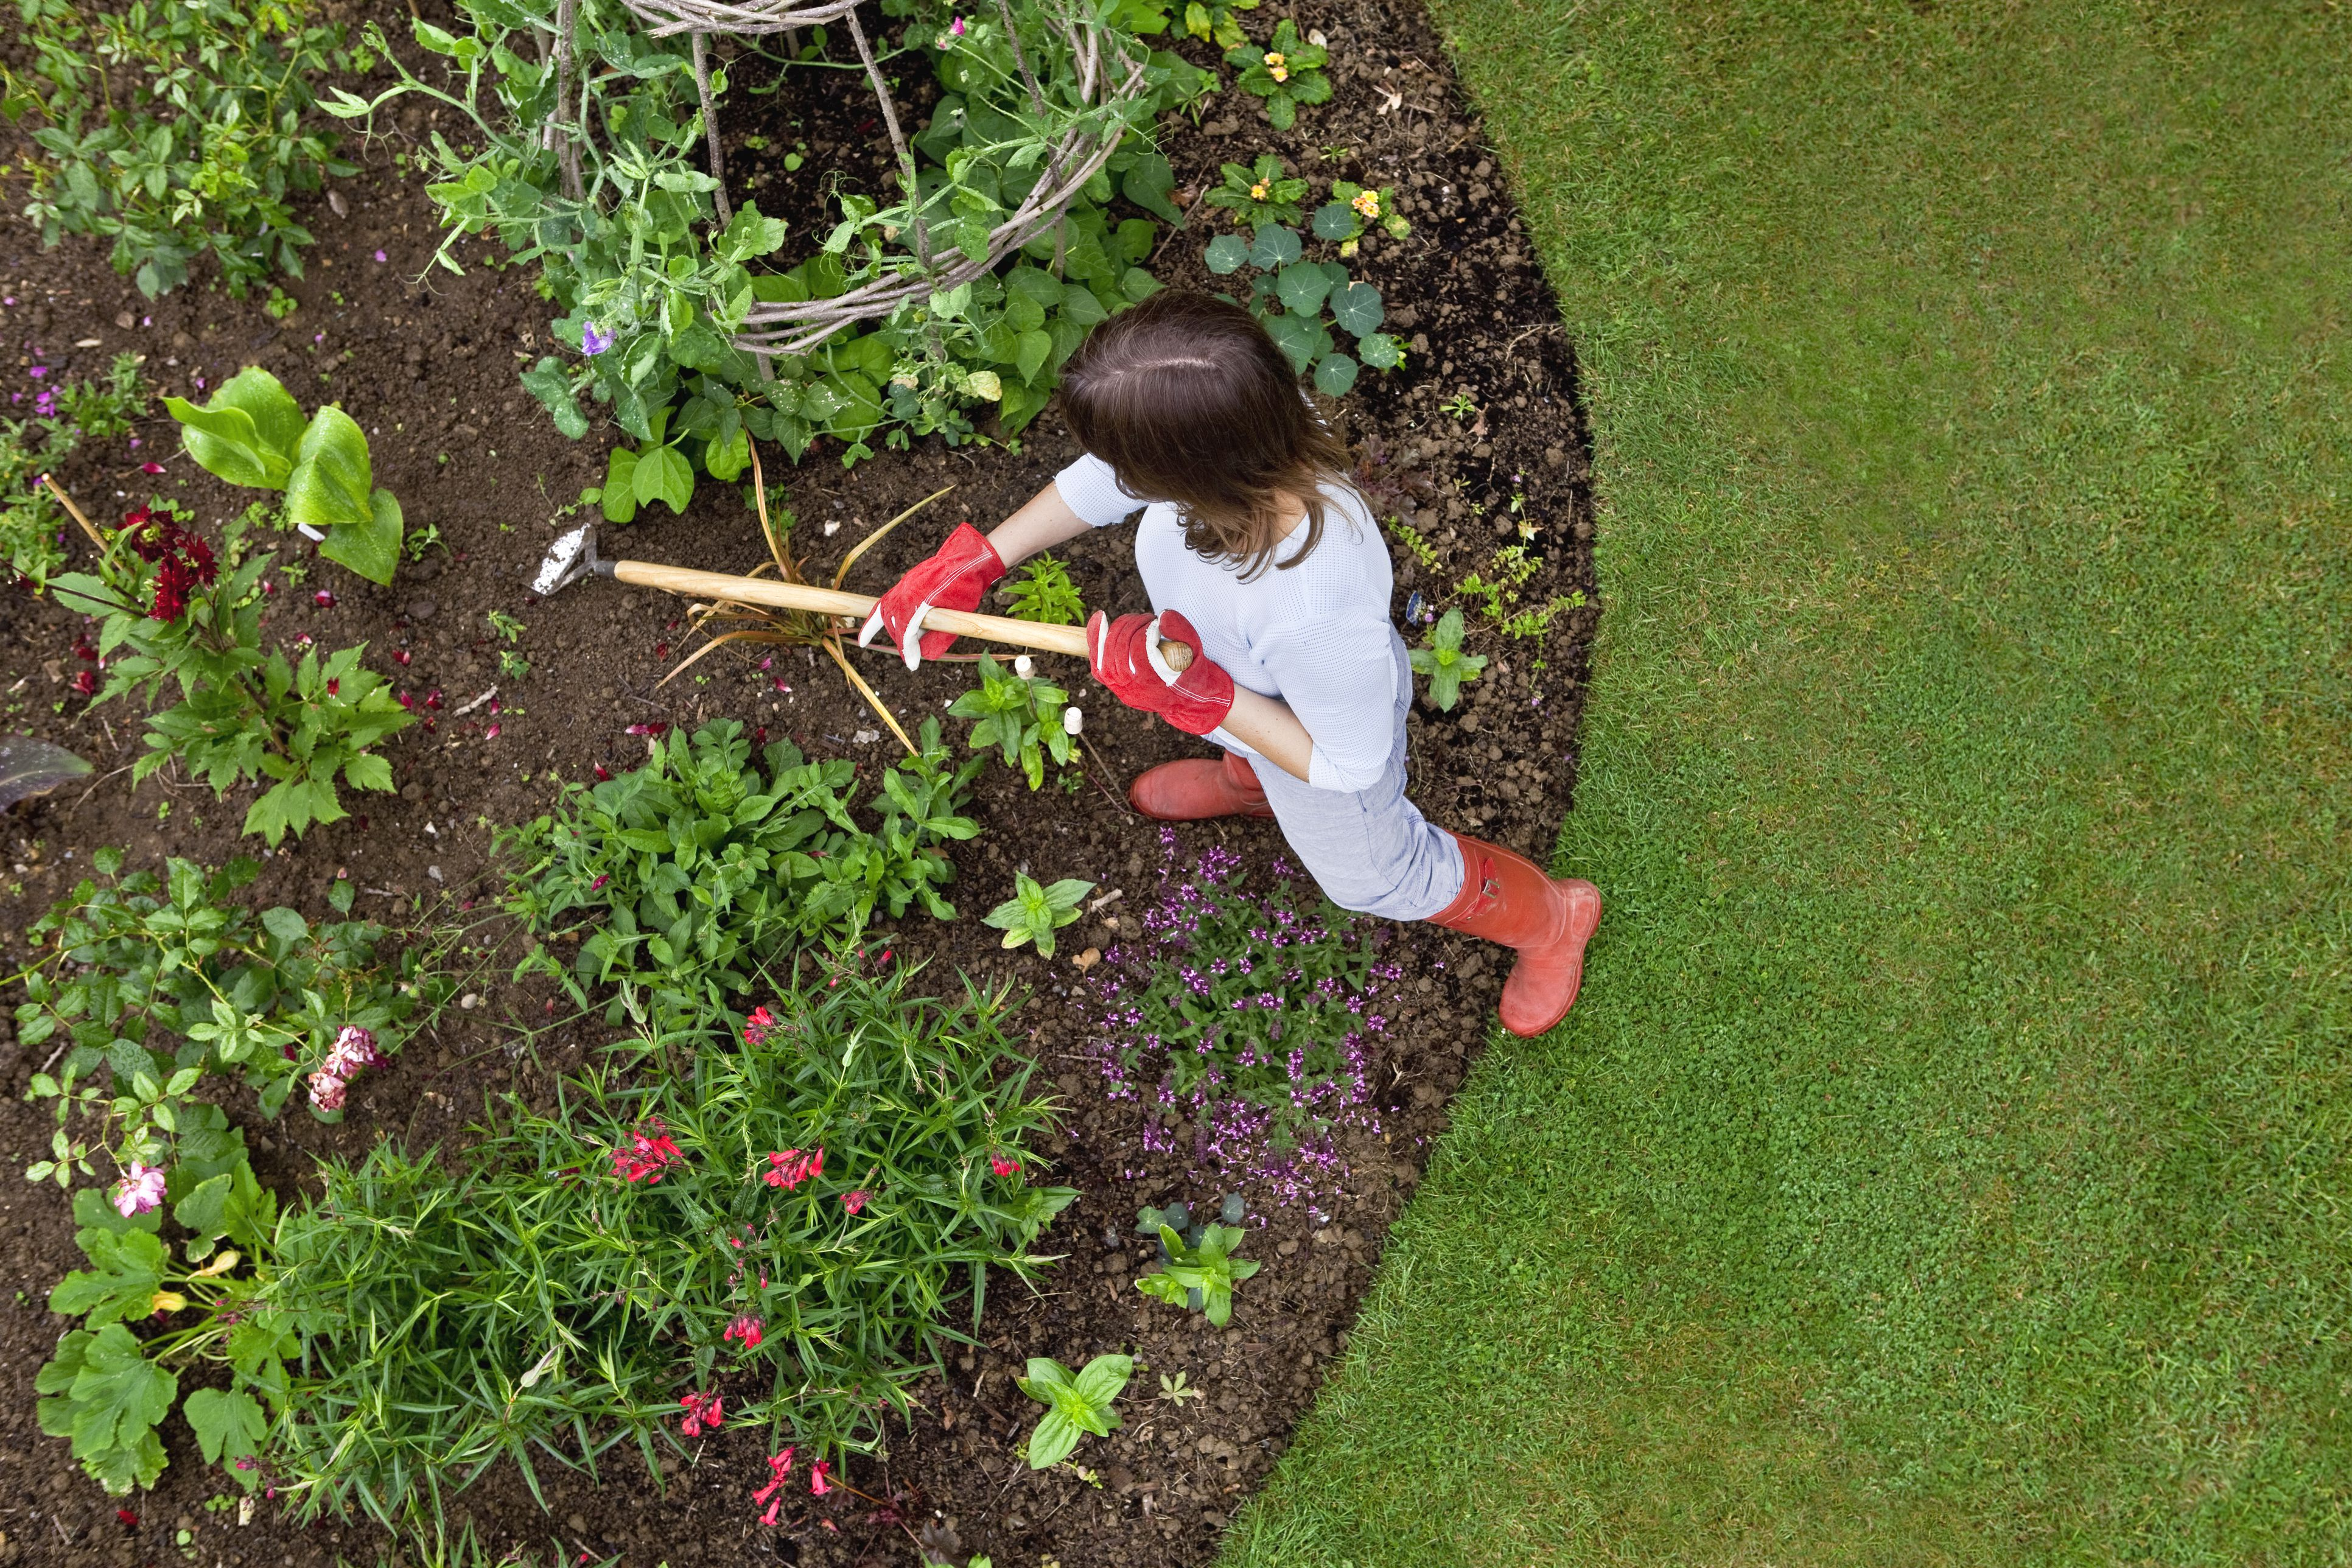 Woman weeding a flower bed with a hoe